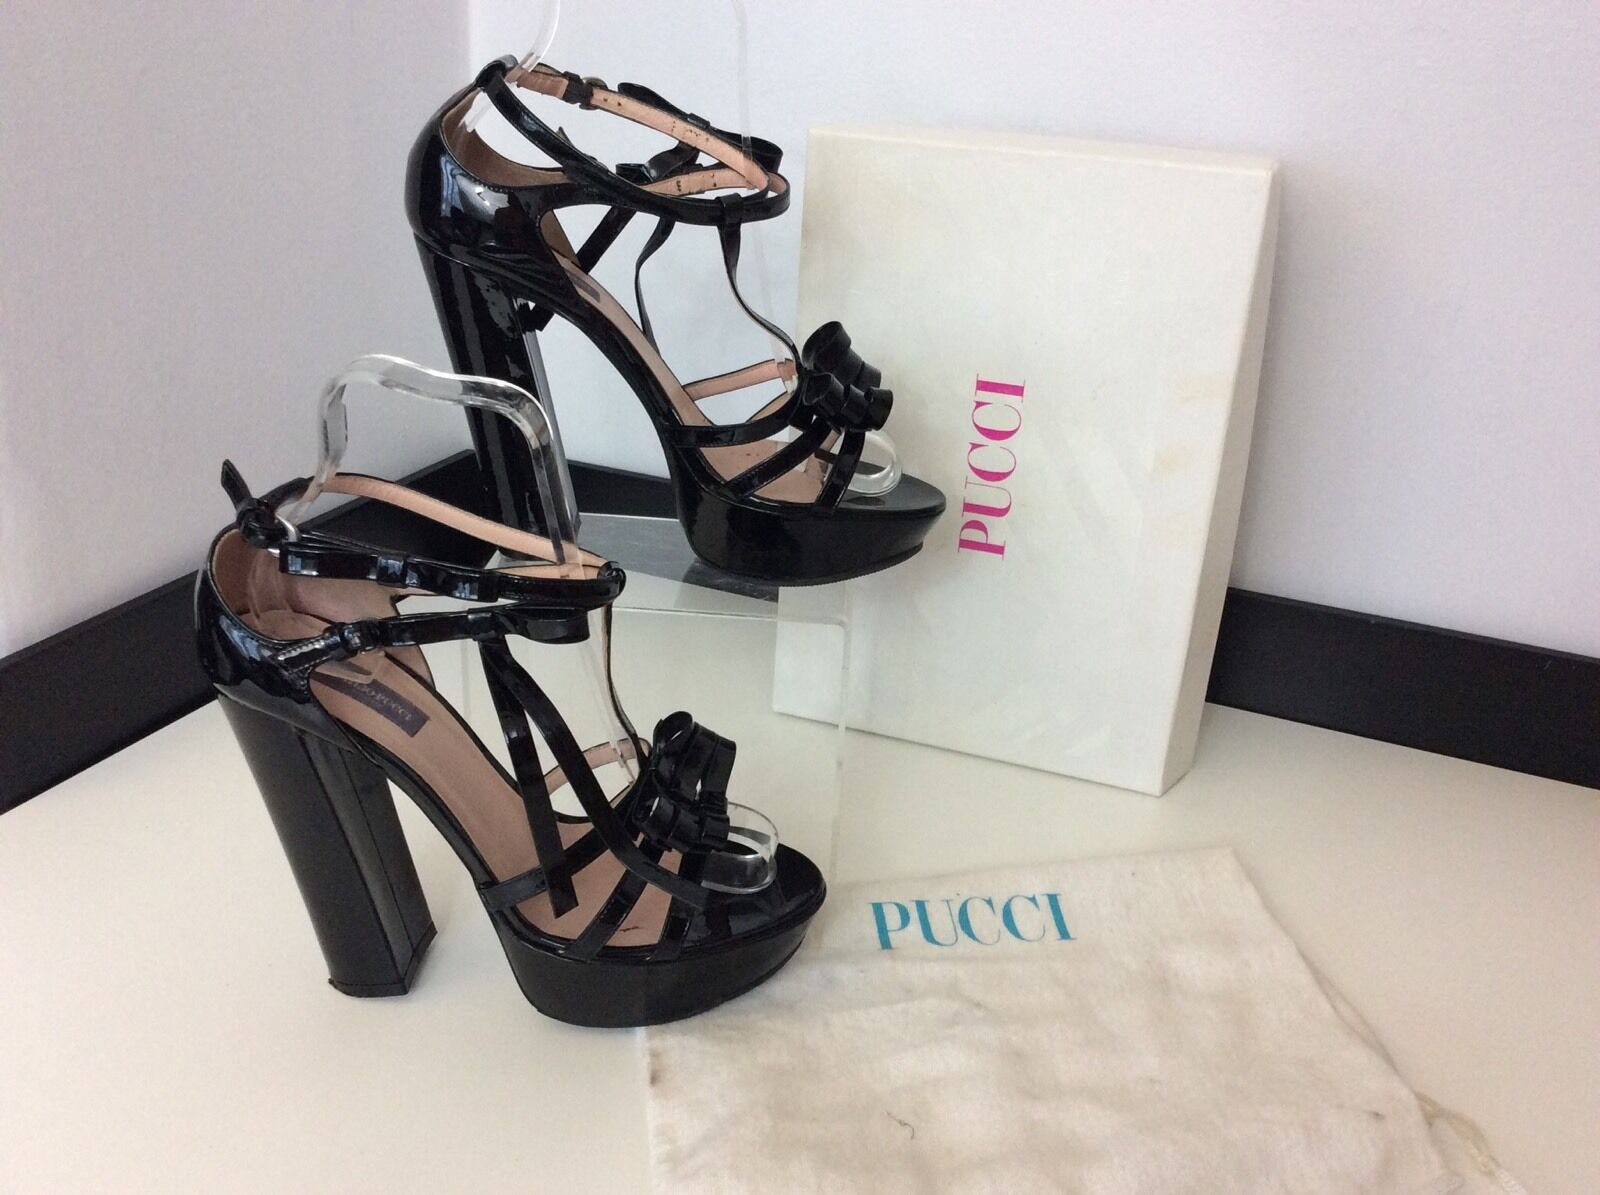 EMILIO PUCCI black Patent Leather shoes Size 37.5 Uk 4.5 Boxed Rrp